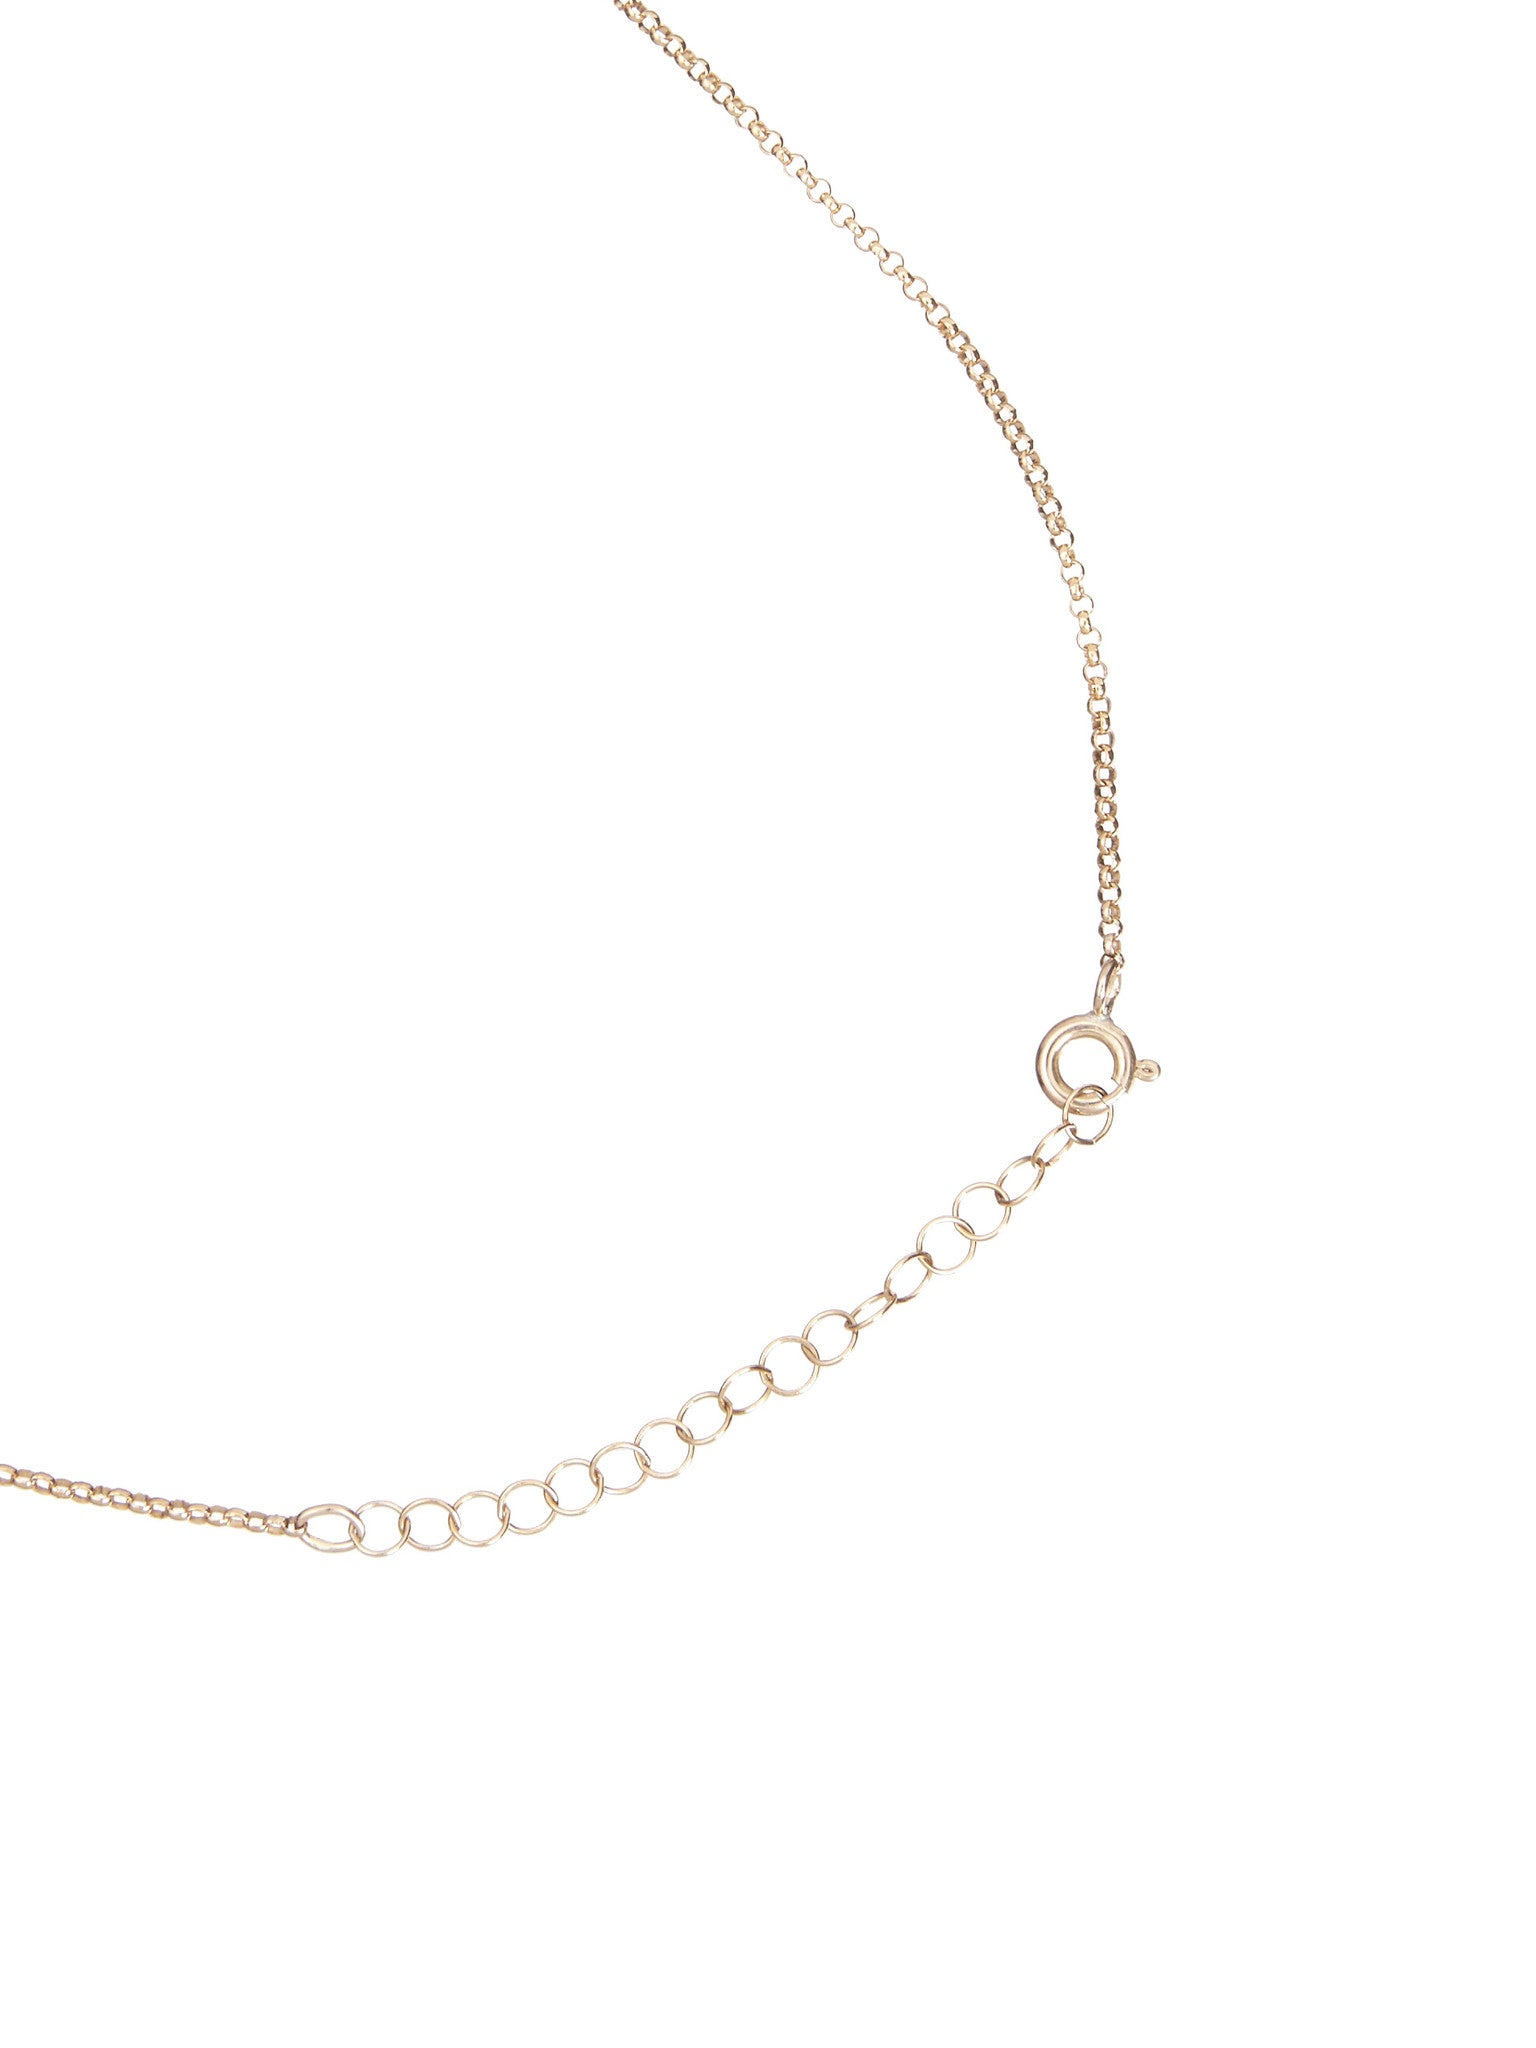 Victoria triple pearl necklace